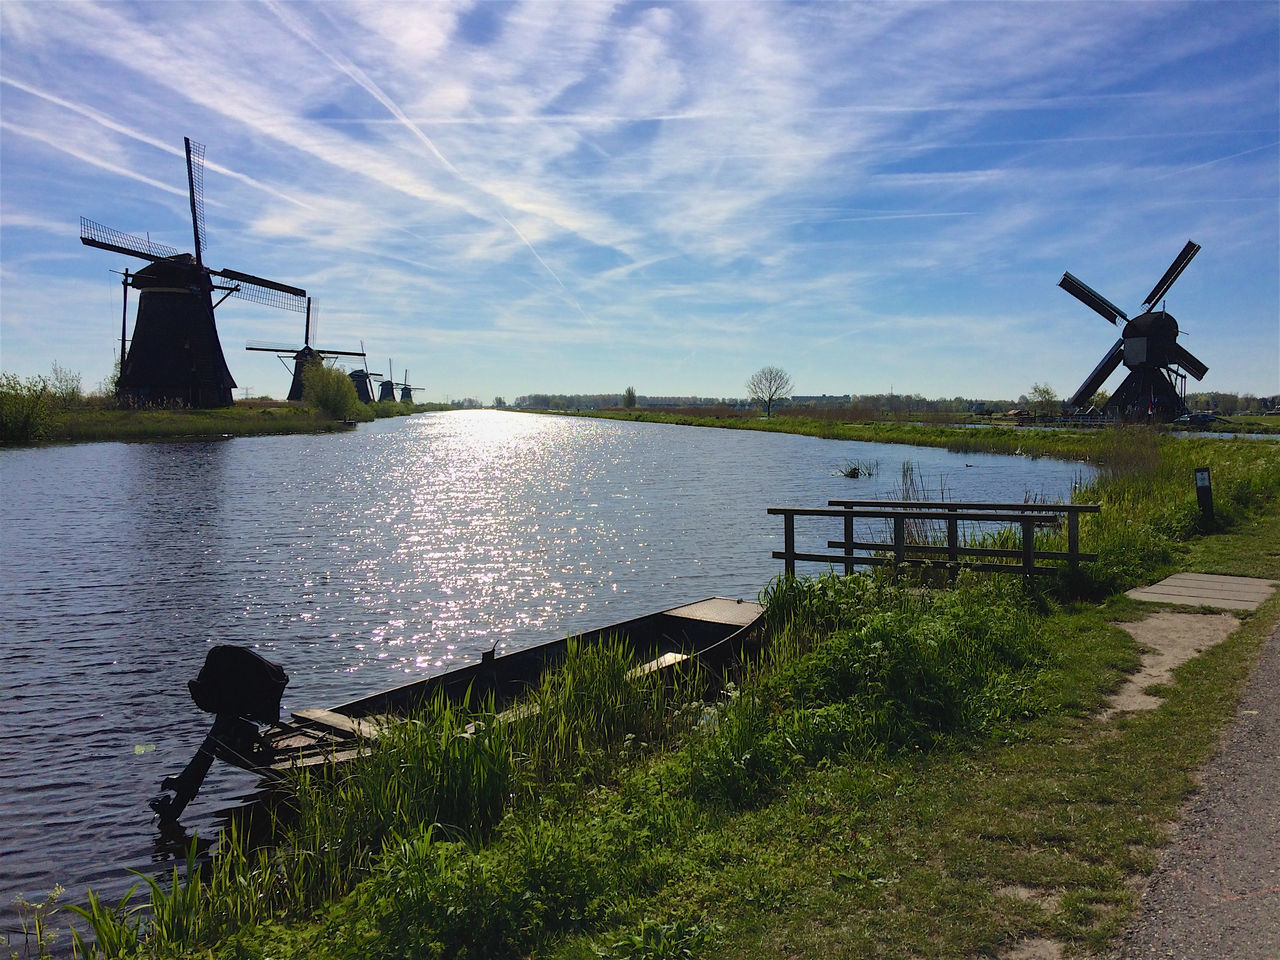 Windmills Kinderdijk Alternative Energy Architecture Beauty In Nature Boat Building Exterior Built Structure Day Environmental Conservation Kinderdijk Nature Netherlands No People Outdoors Renewable Energy Sky Water Water Reflections Wind Power Wind Turbine Windmill